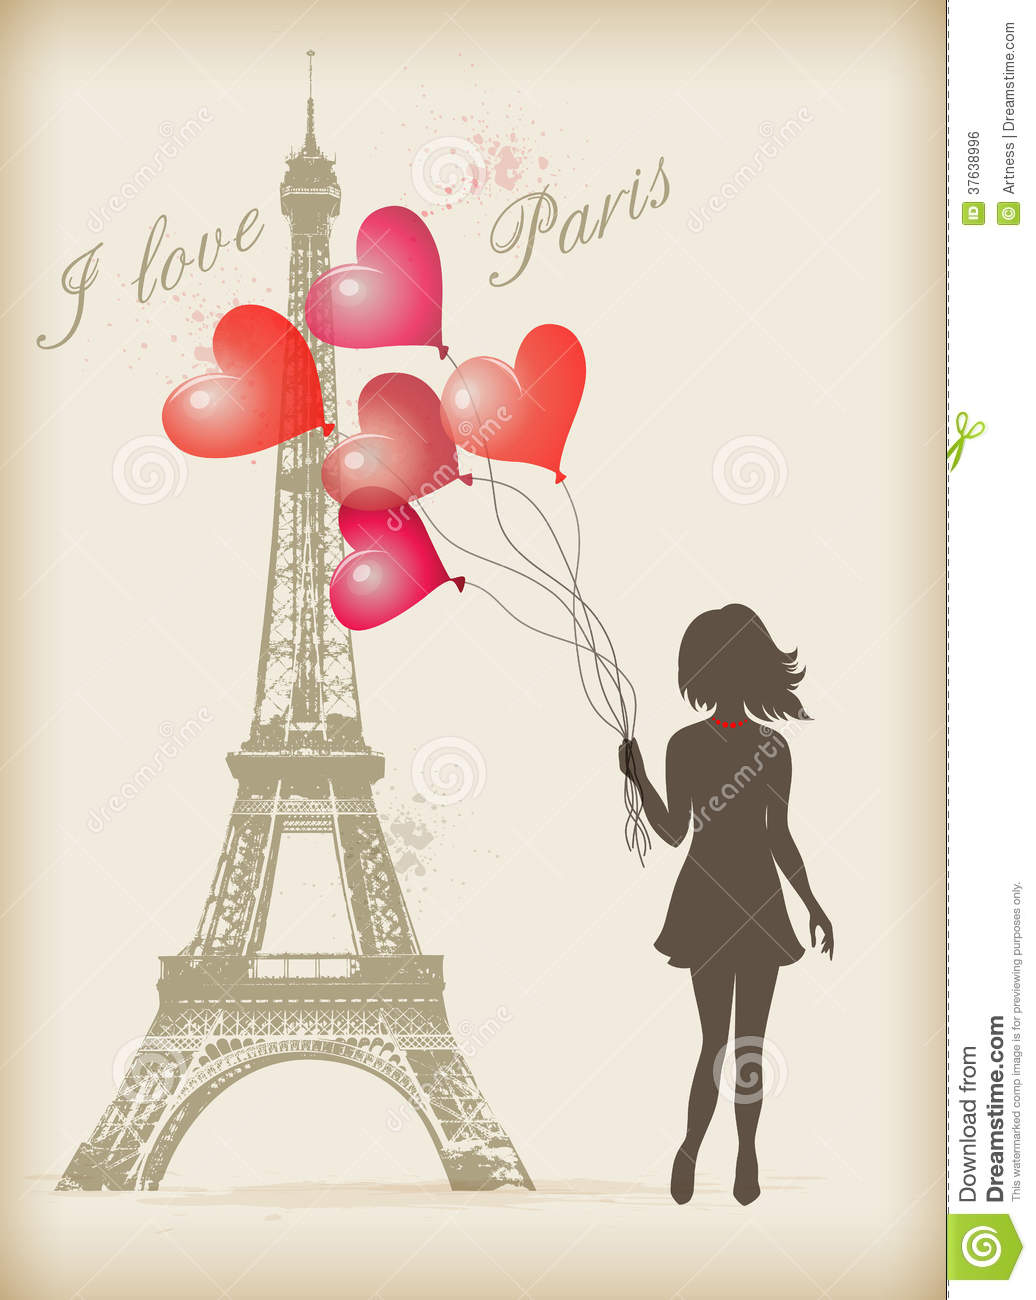 Girl with red balloons royalty free stock image image 37638996